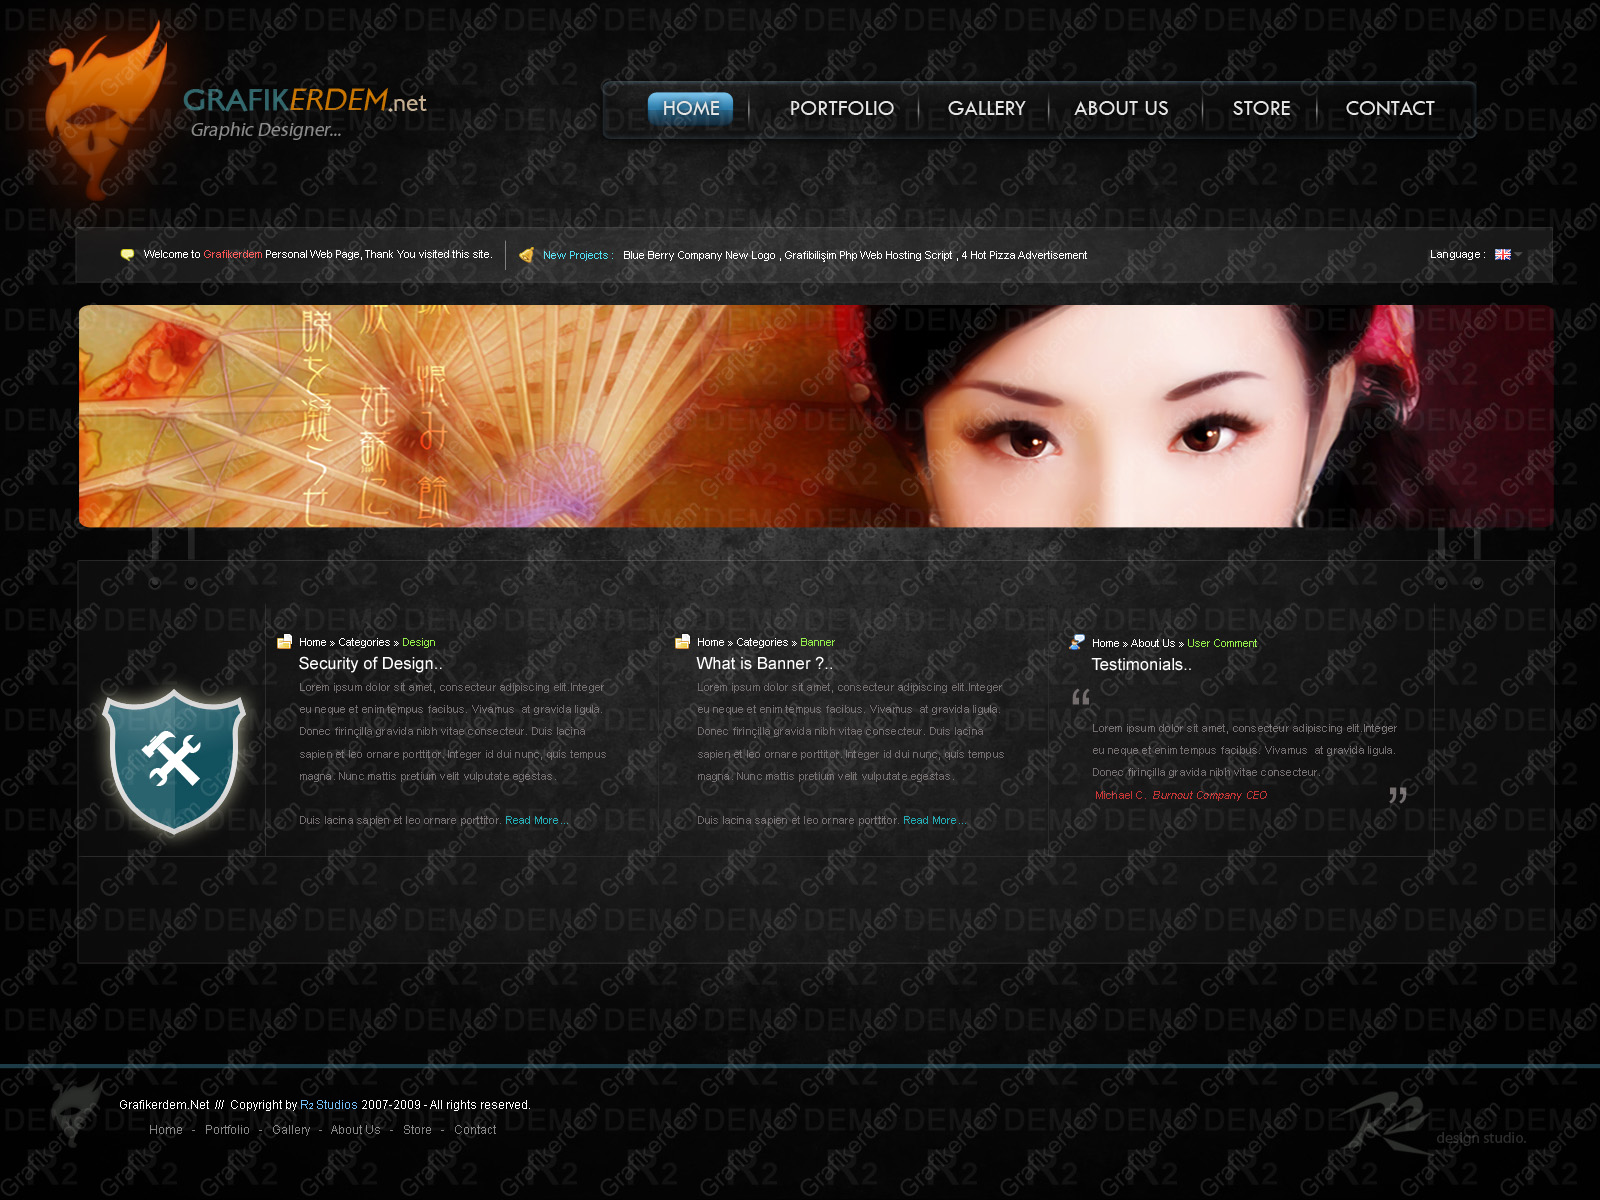 Personal Web Site Template by Grafikerdem